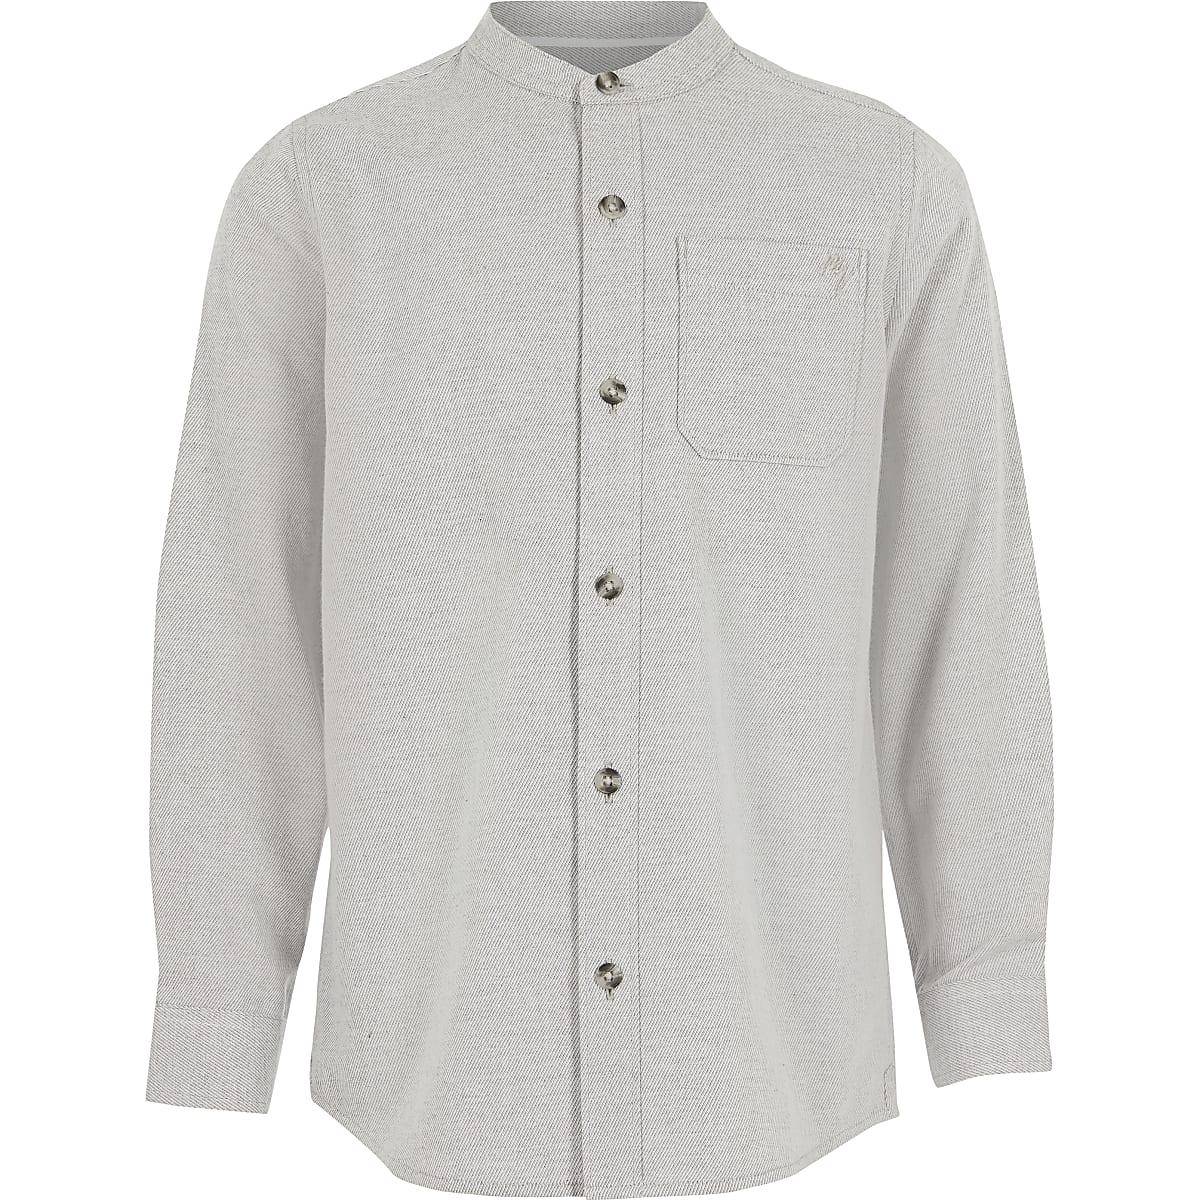 Boys grey textured grandad collar shirt